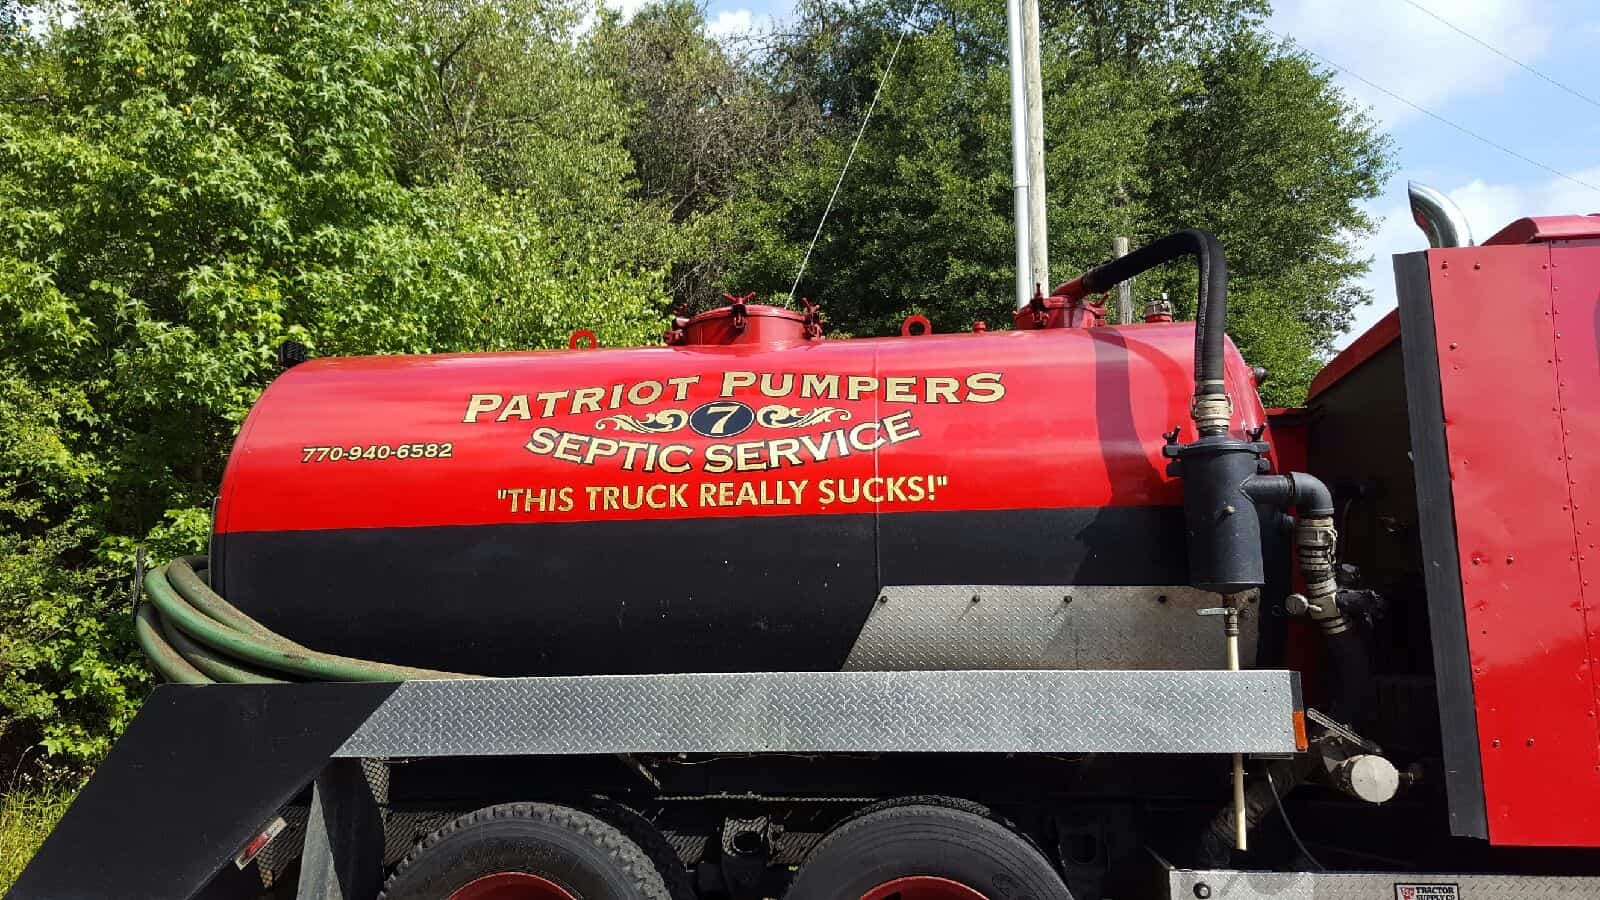 Patriot Pumpers - Licensed, Insured, Professional Septic Pumping Service